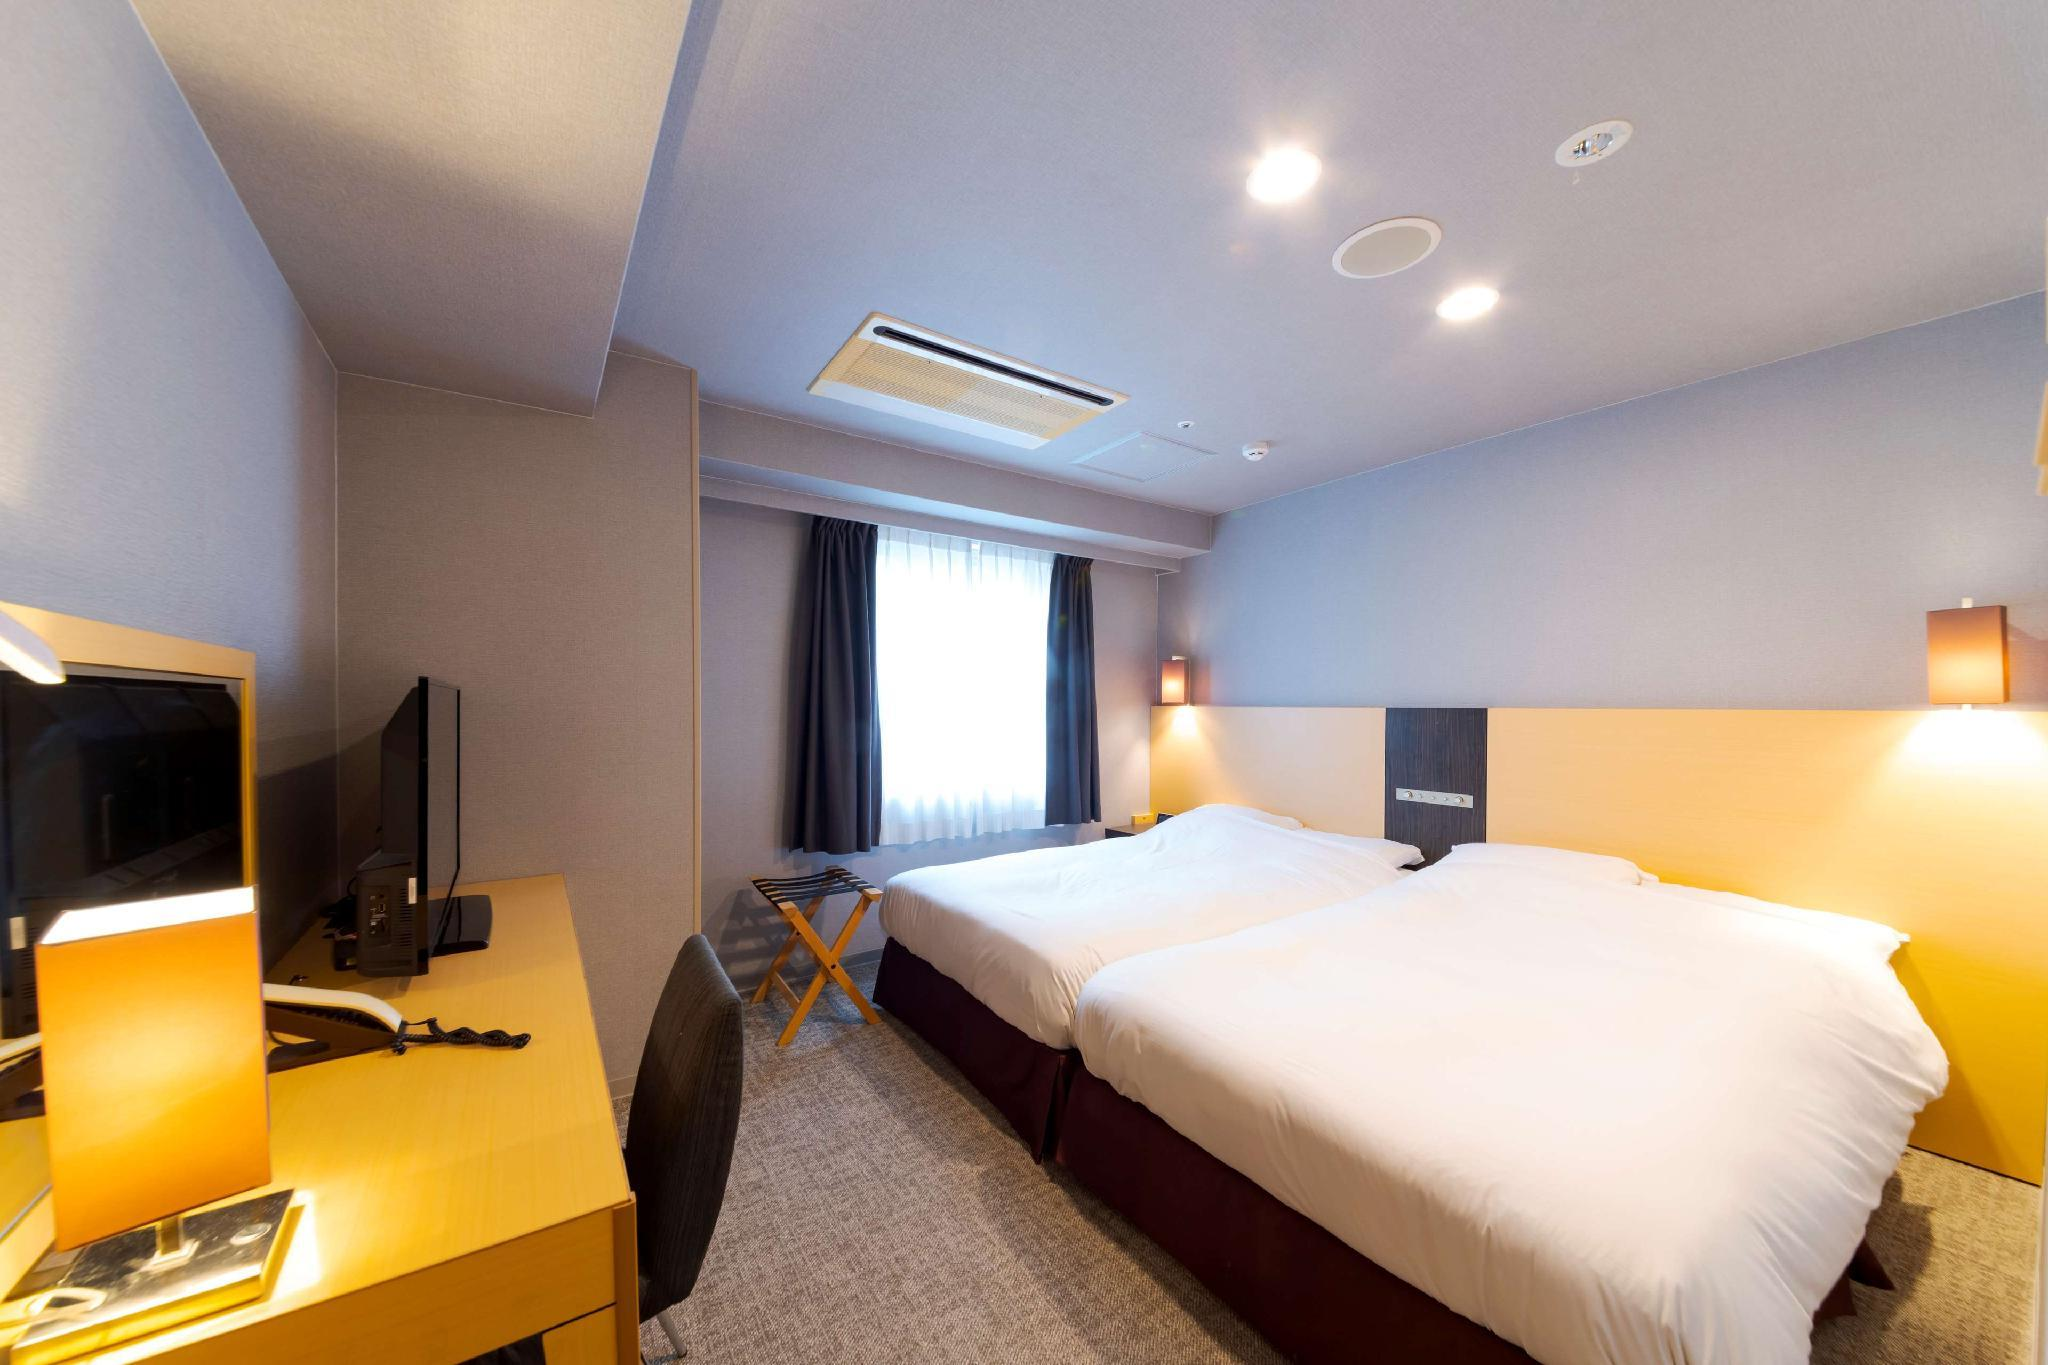 Quarto Twin Hollywood para 3 pessoas - Fumadores (Hollywood Twin Room for 3 People - Smoking)